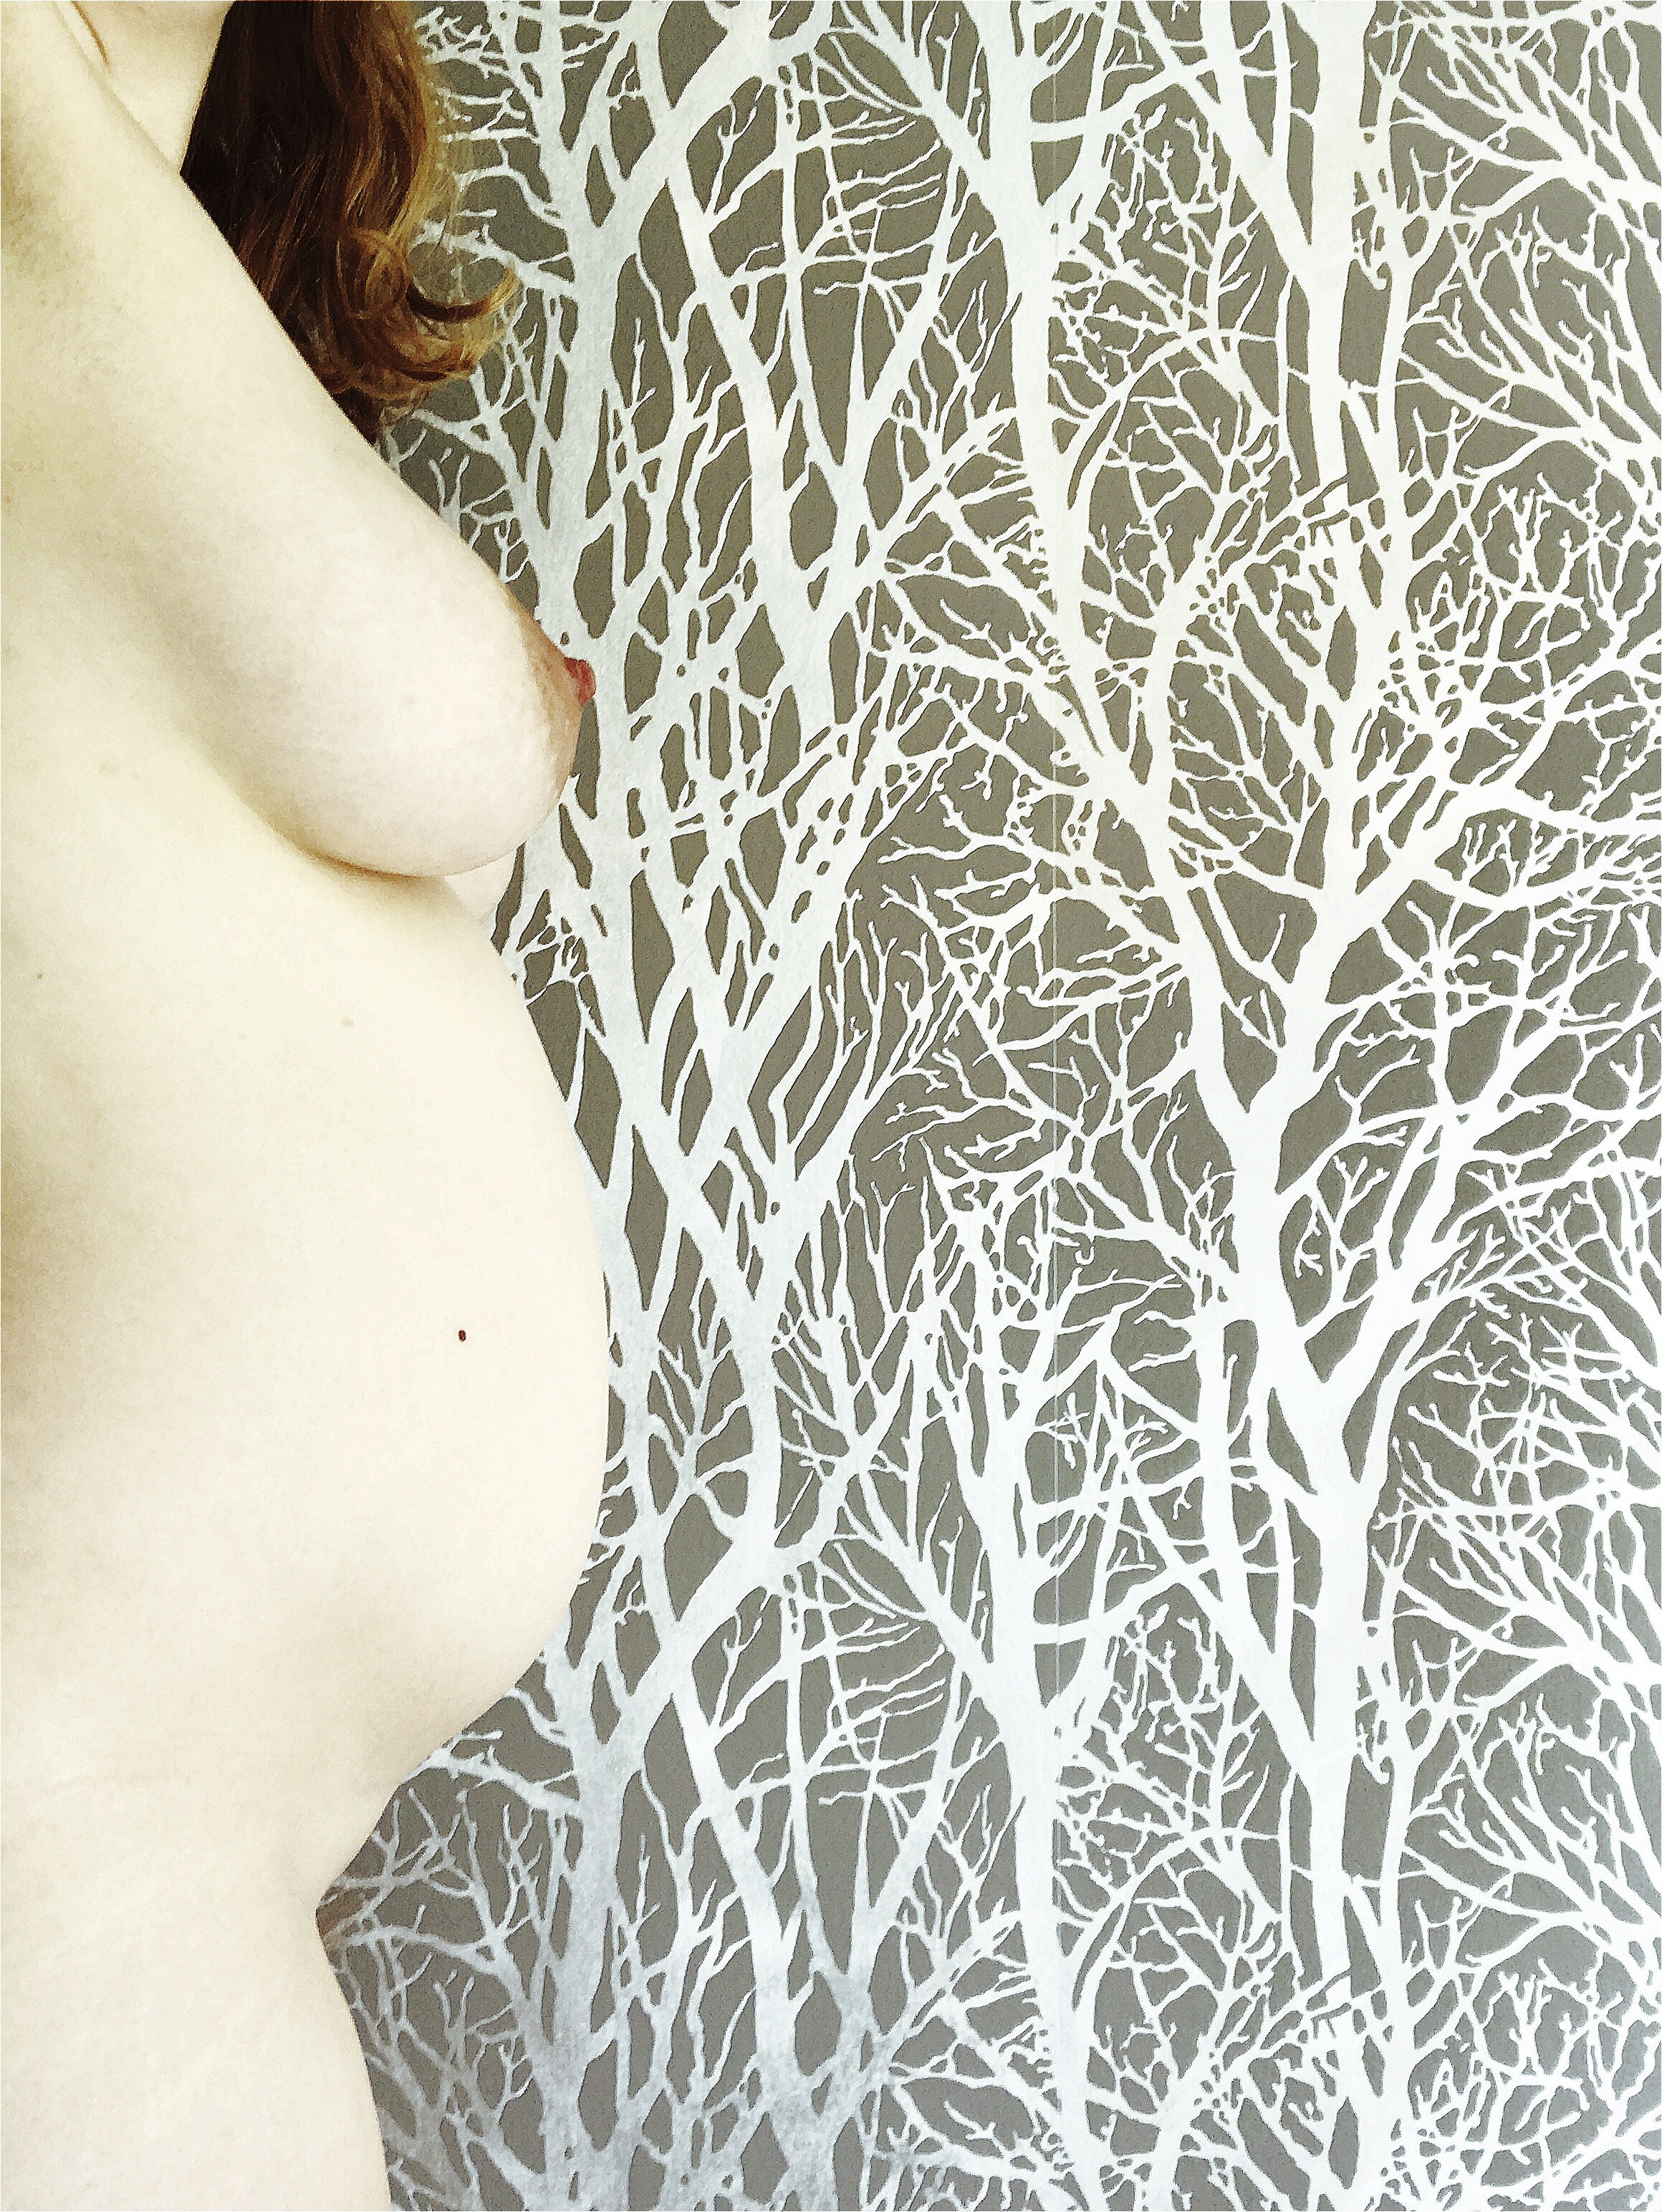 A profile of my 24 week pregnant belly and breasts, on the left of the photo that is otherwise filled with grey wallpaper with a white tree pattern on it